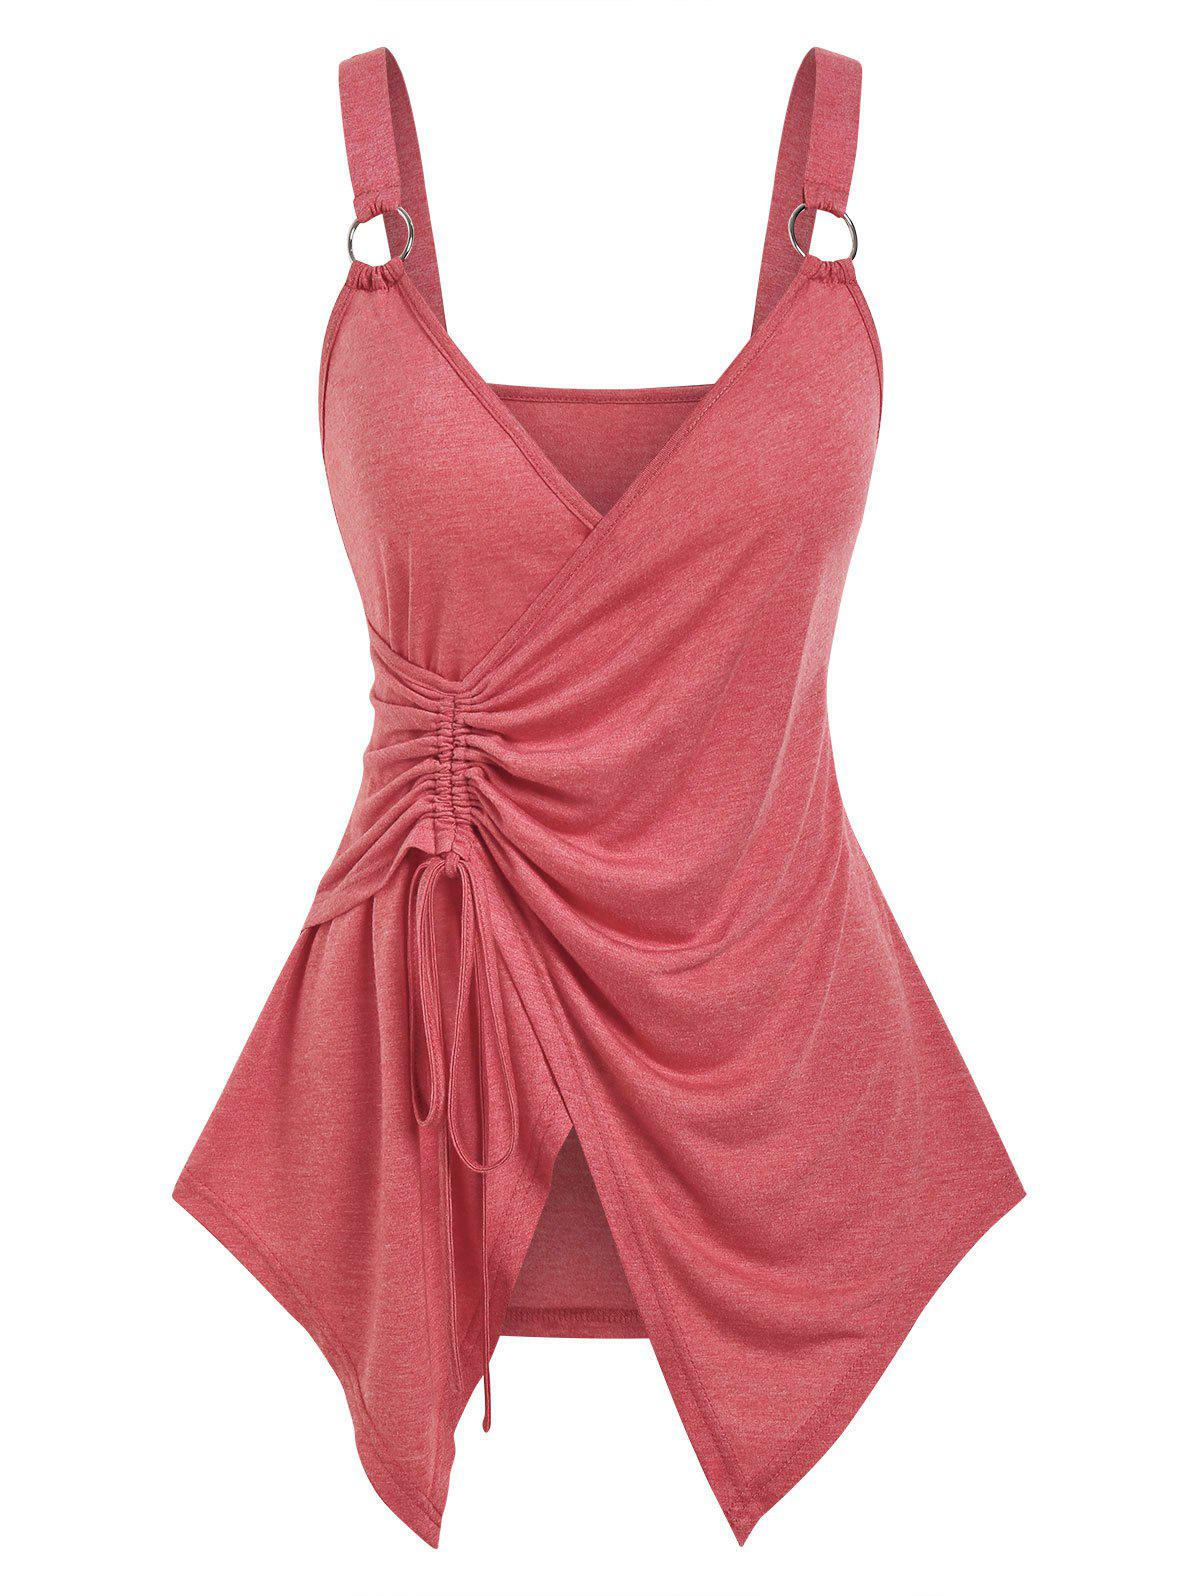 Hot Cinched O-ring Strap Surplice Tank Top